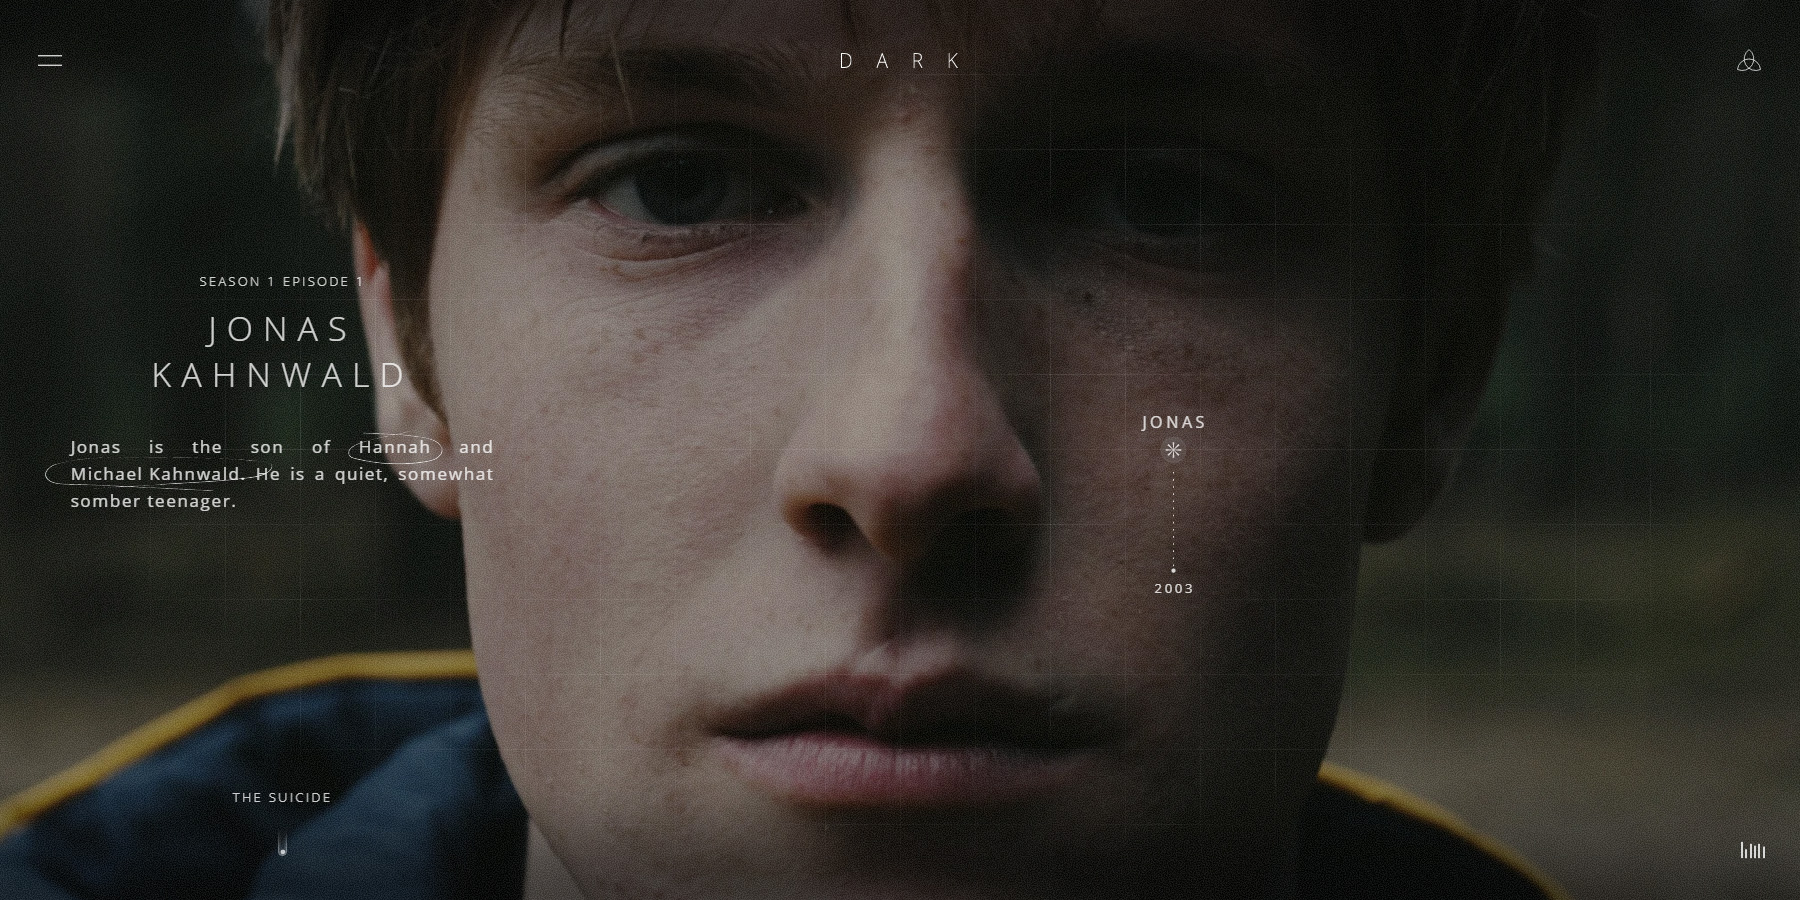 DARK: Official Netflix Guide - Website of the Day